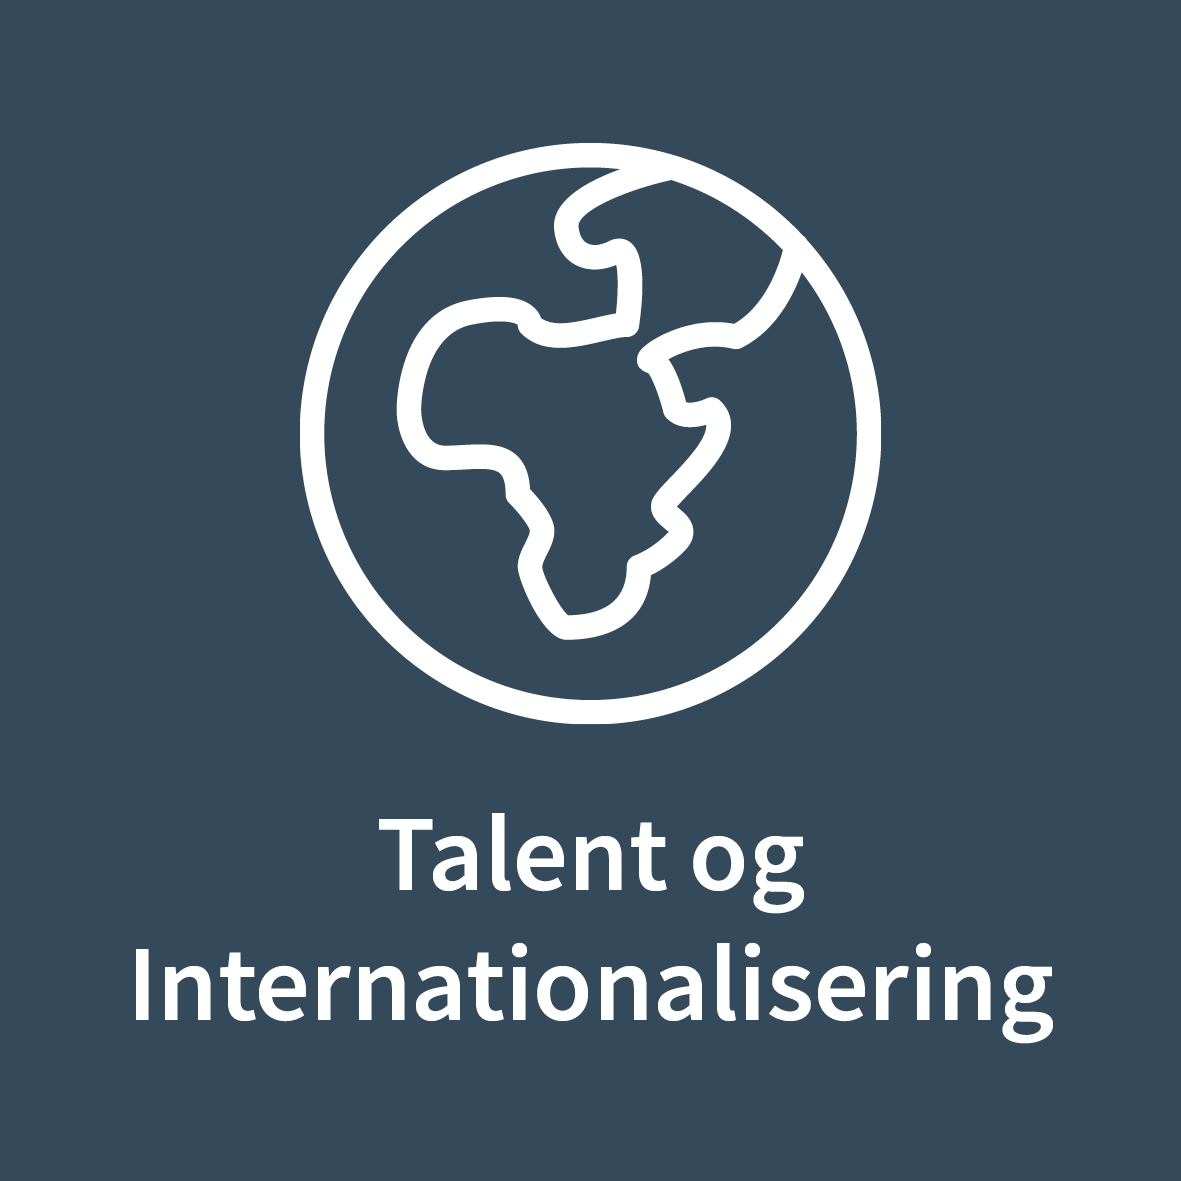 Talent og Internationalisering.png